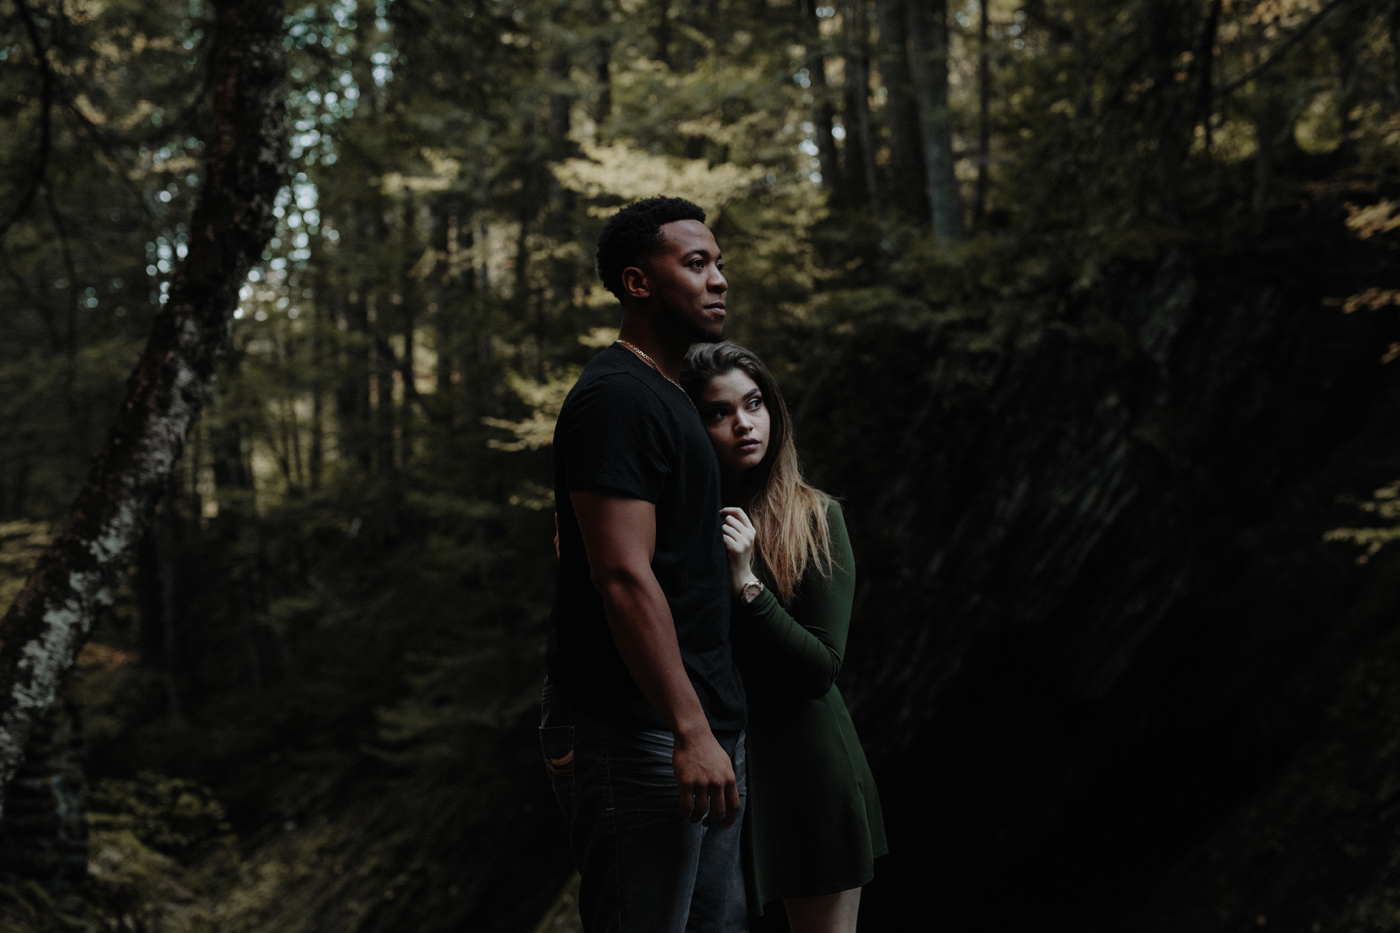 013-central-vermont-photographer-couples-sesssion-trinity-rob.jpg